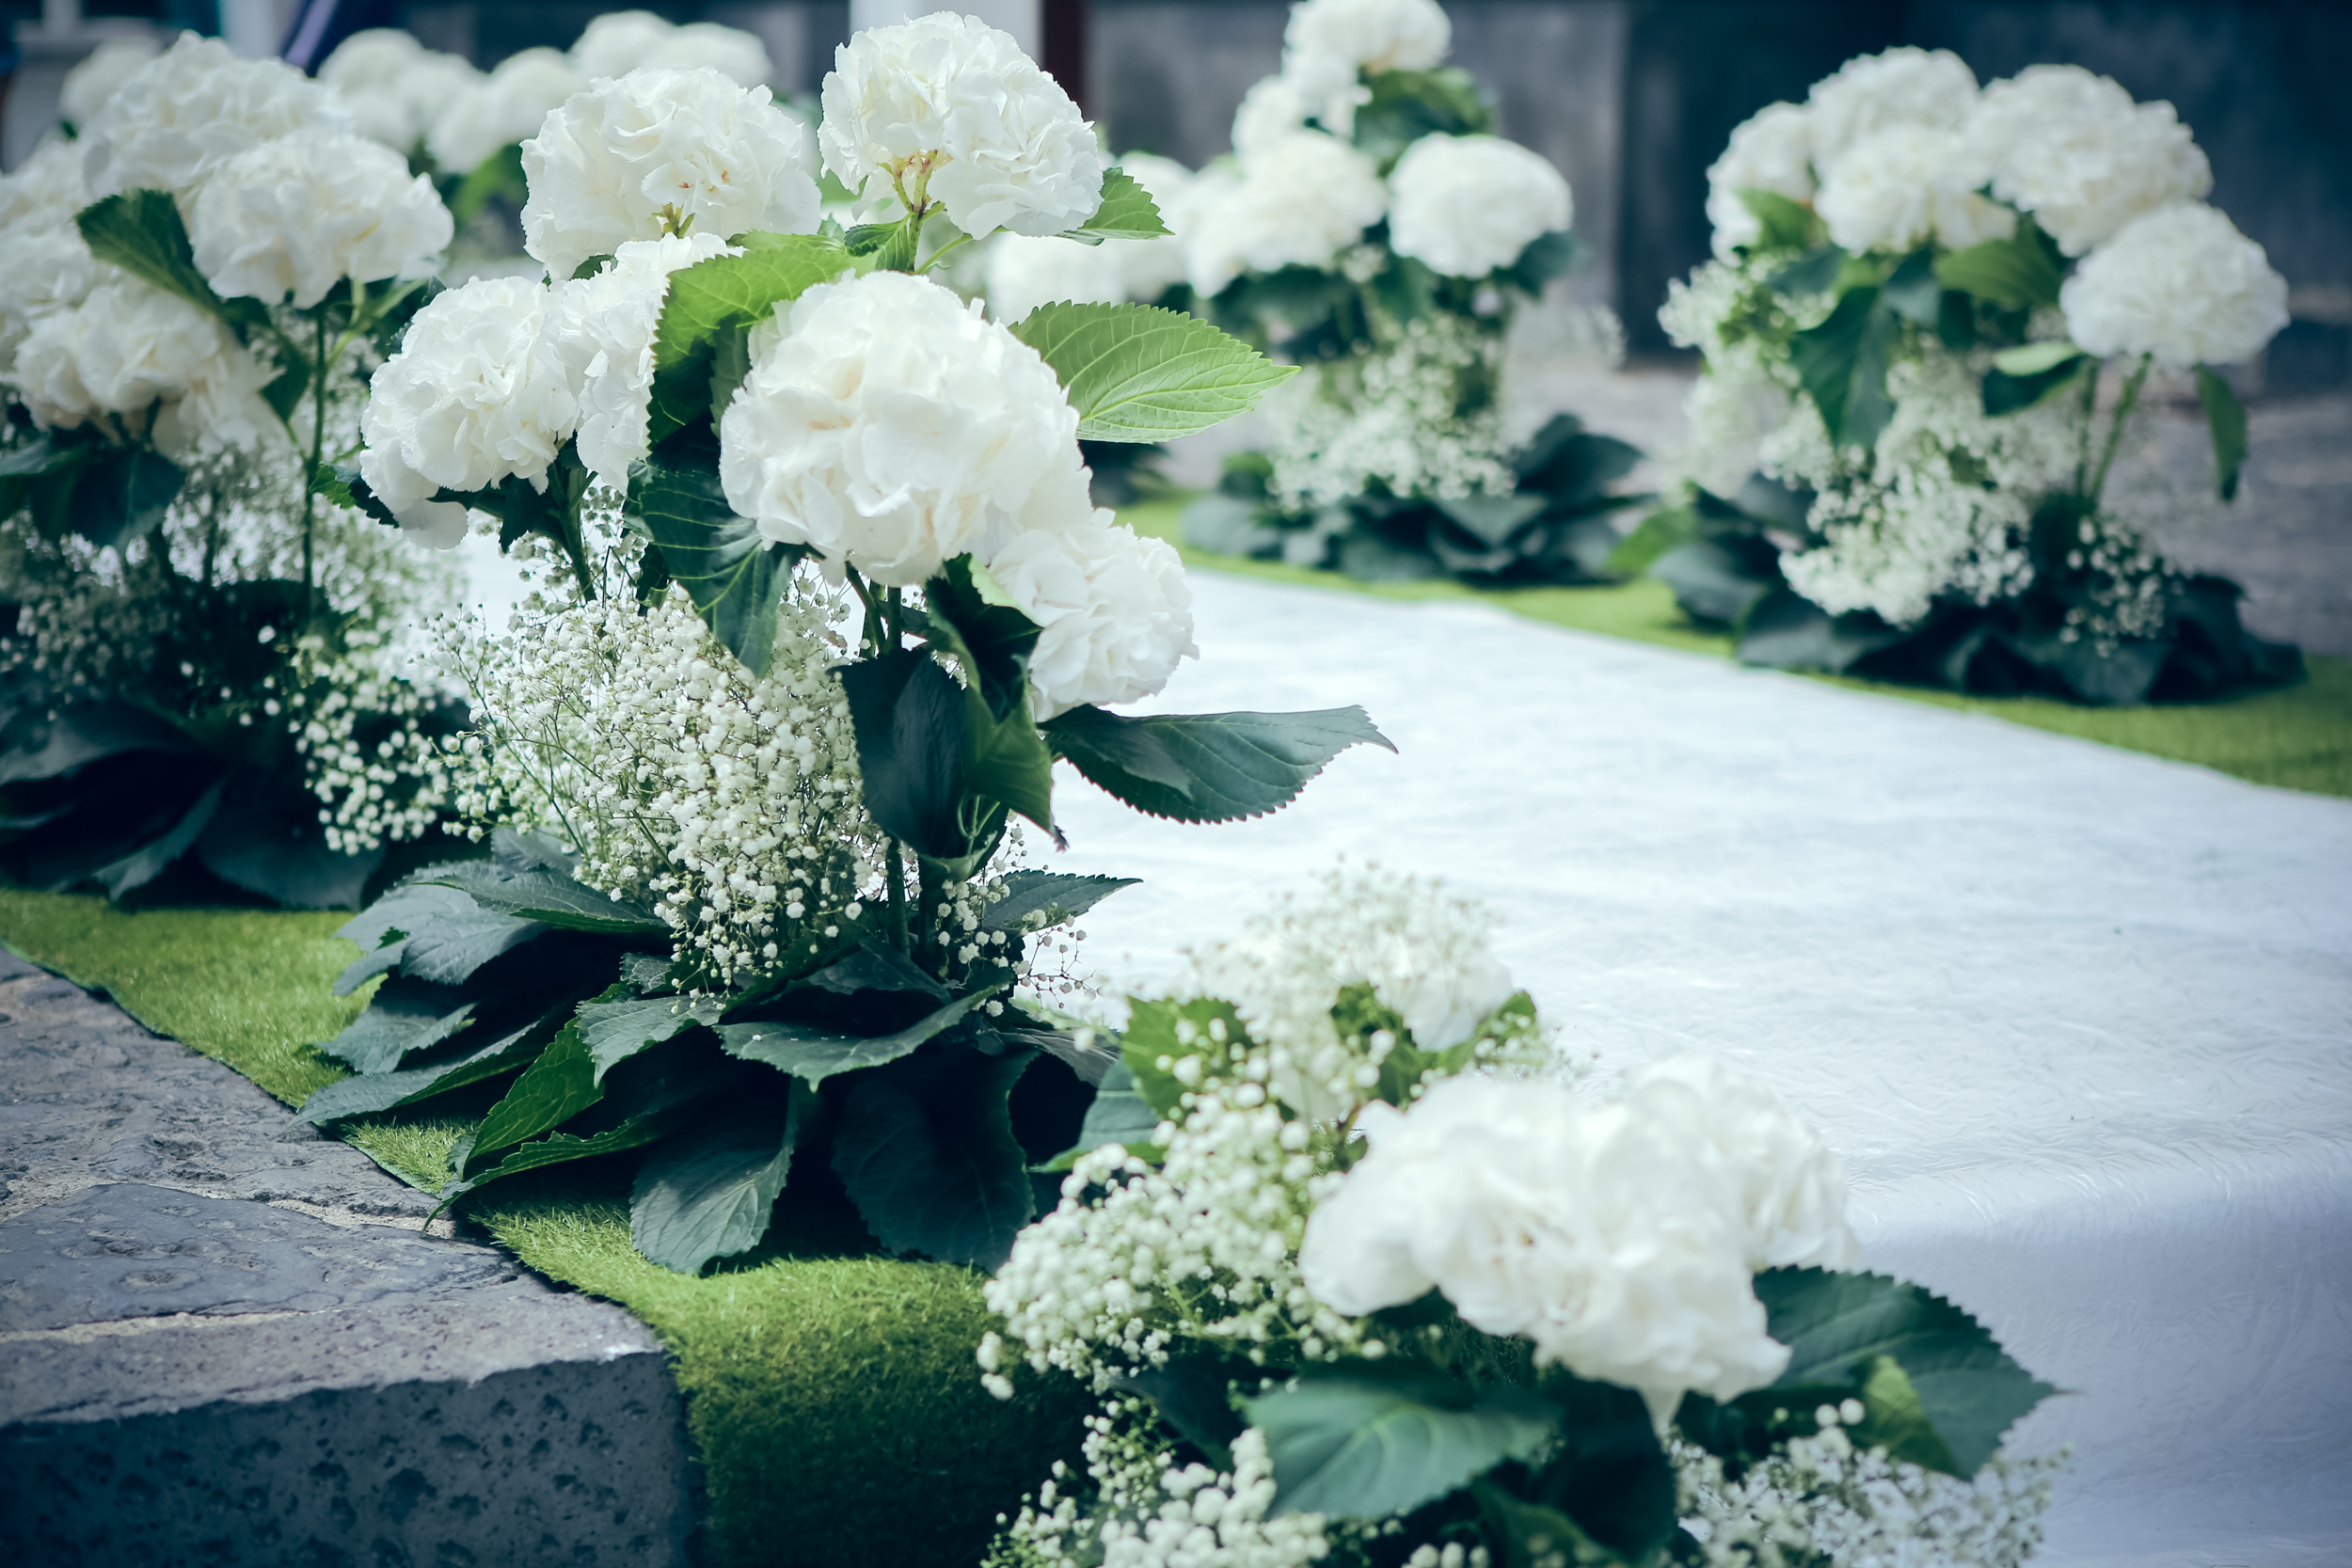 art-of-perfection-event-design-luxury-destination-wedding-planner-italy-white-green-flower-aisle